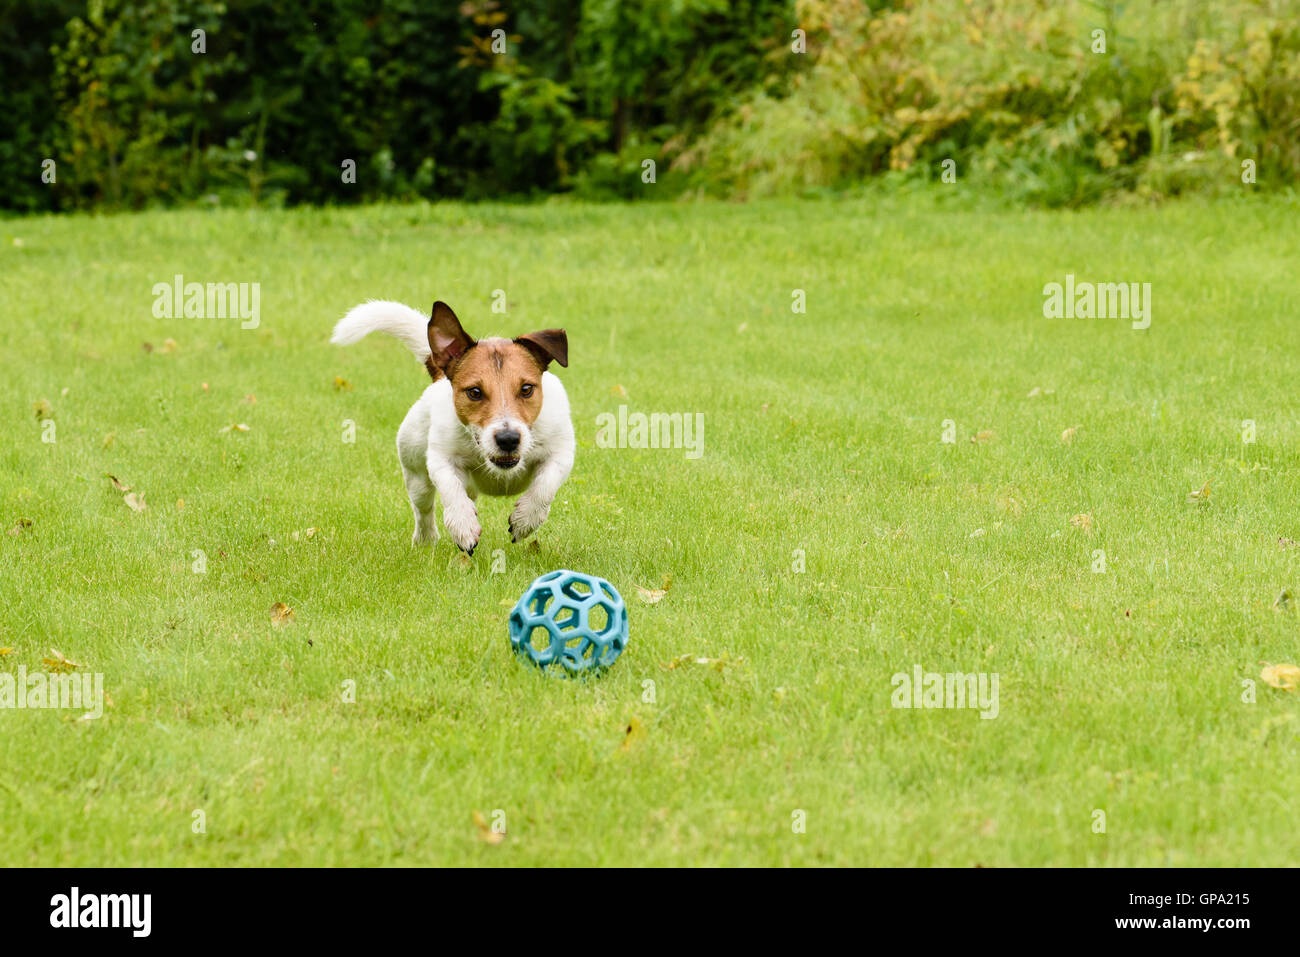 Active dog jumping on ball playing on summer lawn - Stock Image